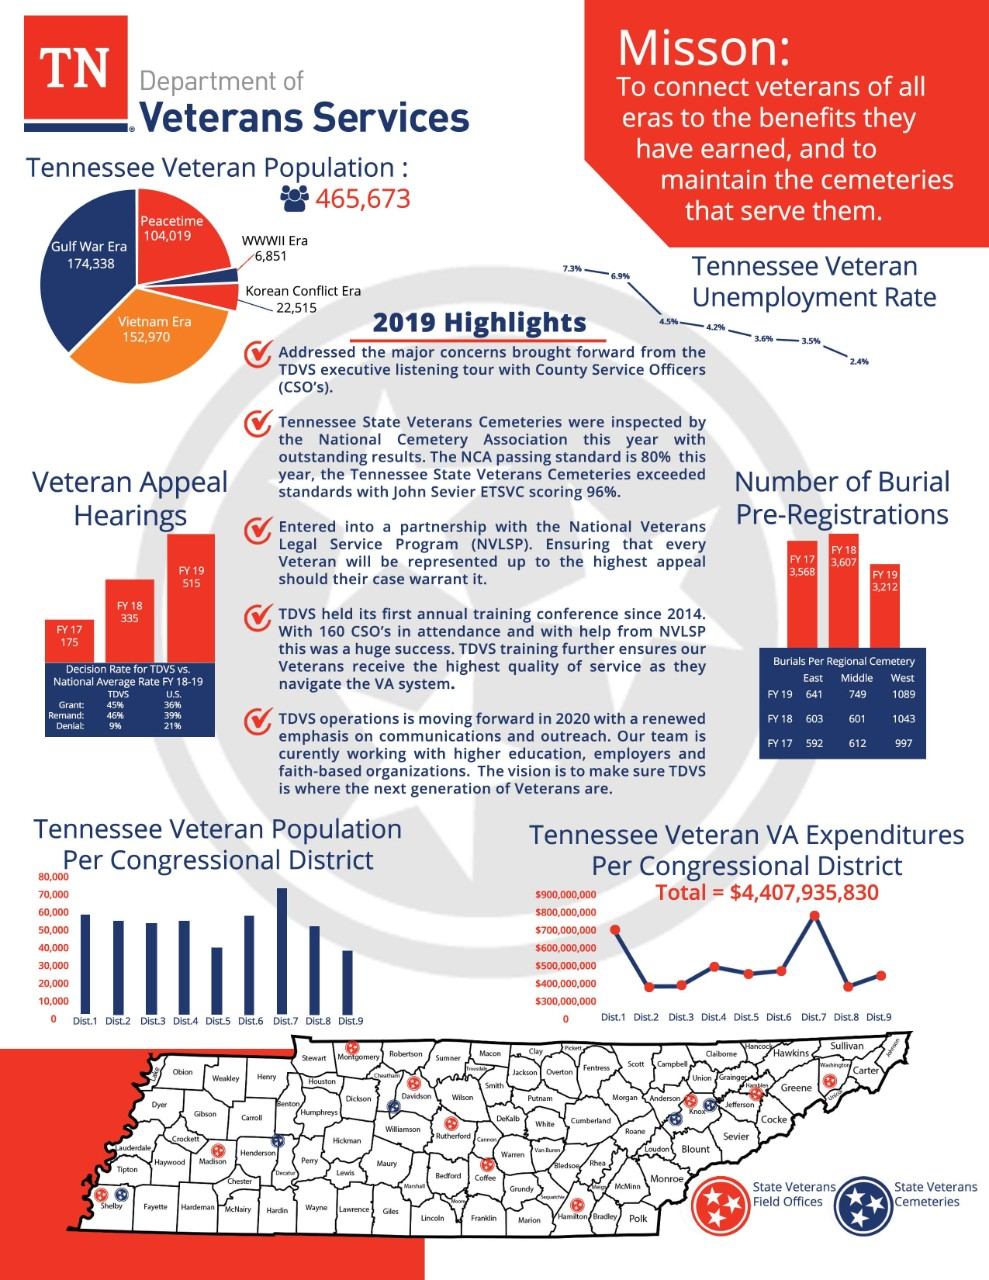 Department of Veterans Services_2020 One-Pager_Page_1